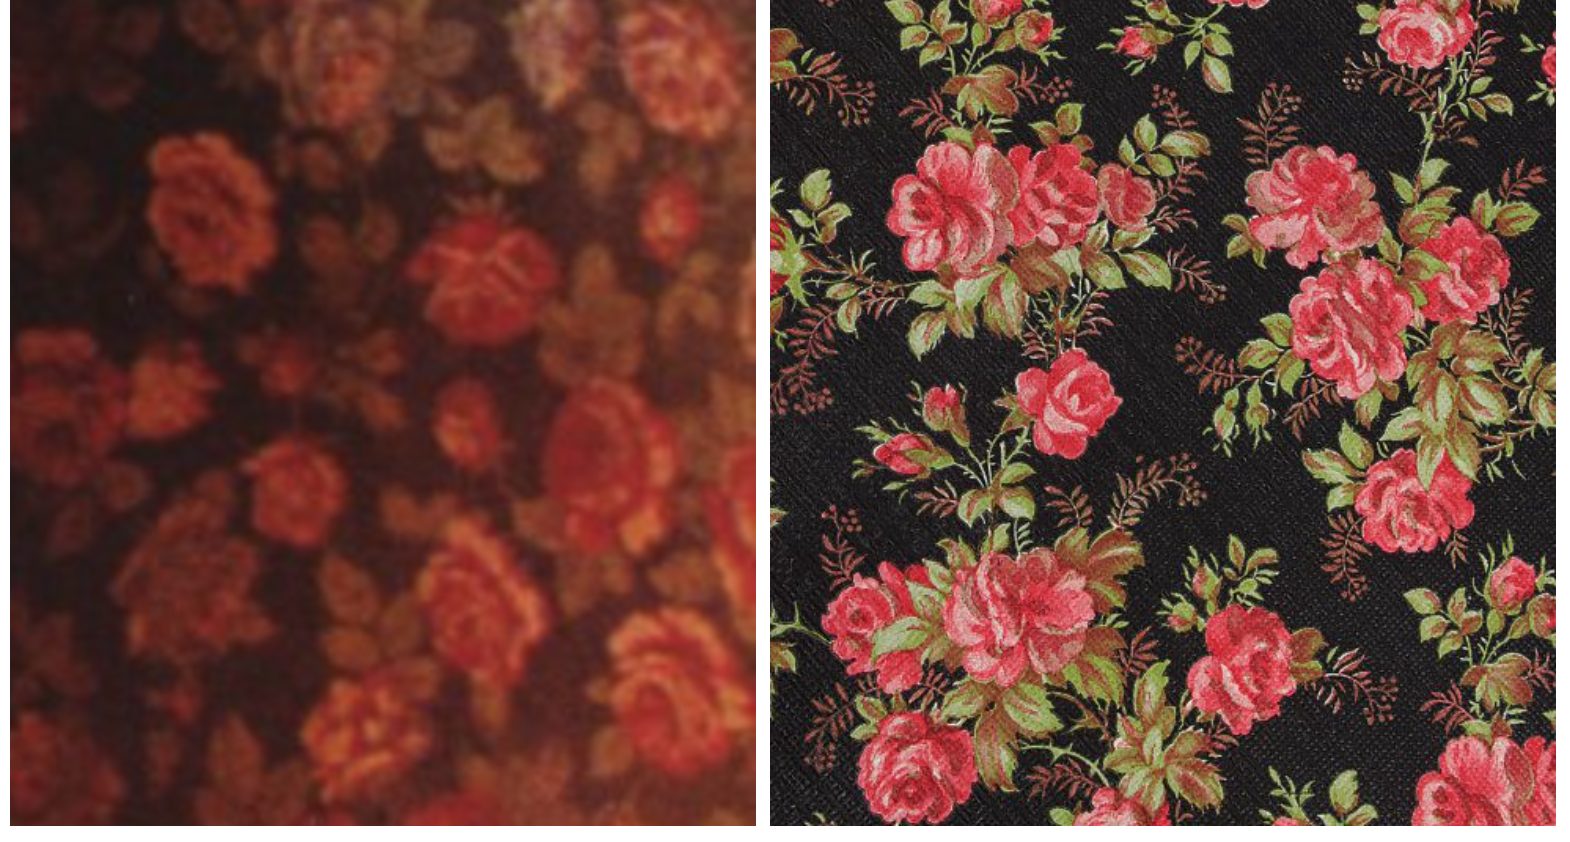 """Detail of Black Lodge wallpaper from FWWM (left), and the closest thing I could find online called """"Vintage Pink and Red Rose Wallpaper."""" I cannot find Lynch's wallpaper online anywhere. Did they make it, or dig it up from some antique place?"""